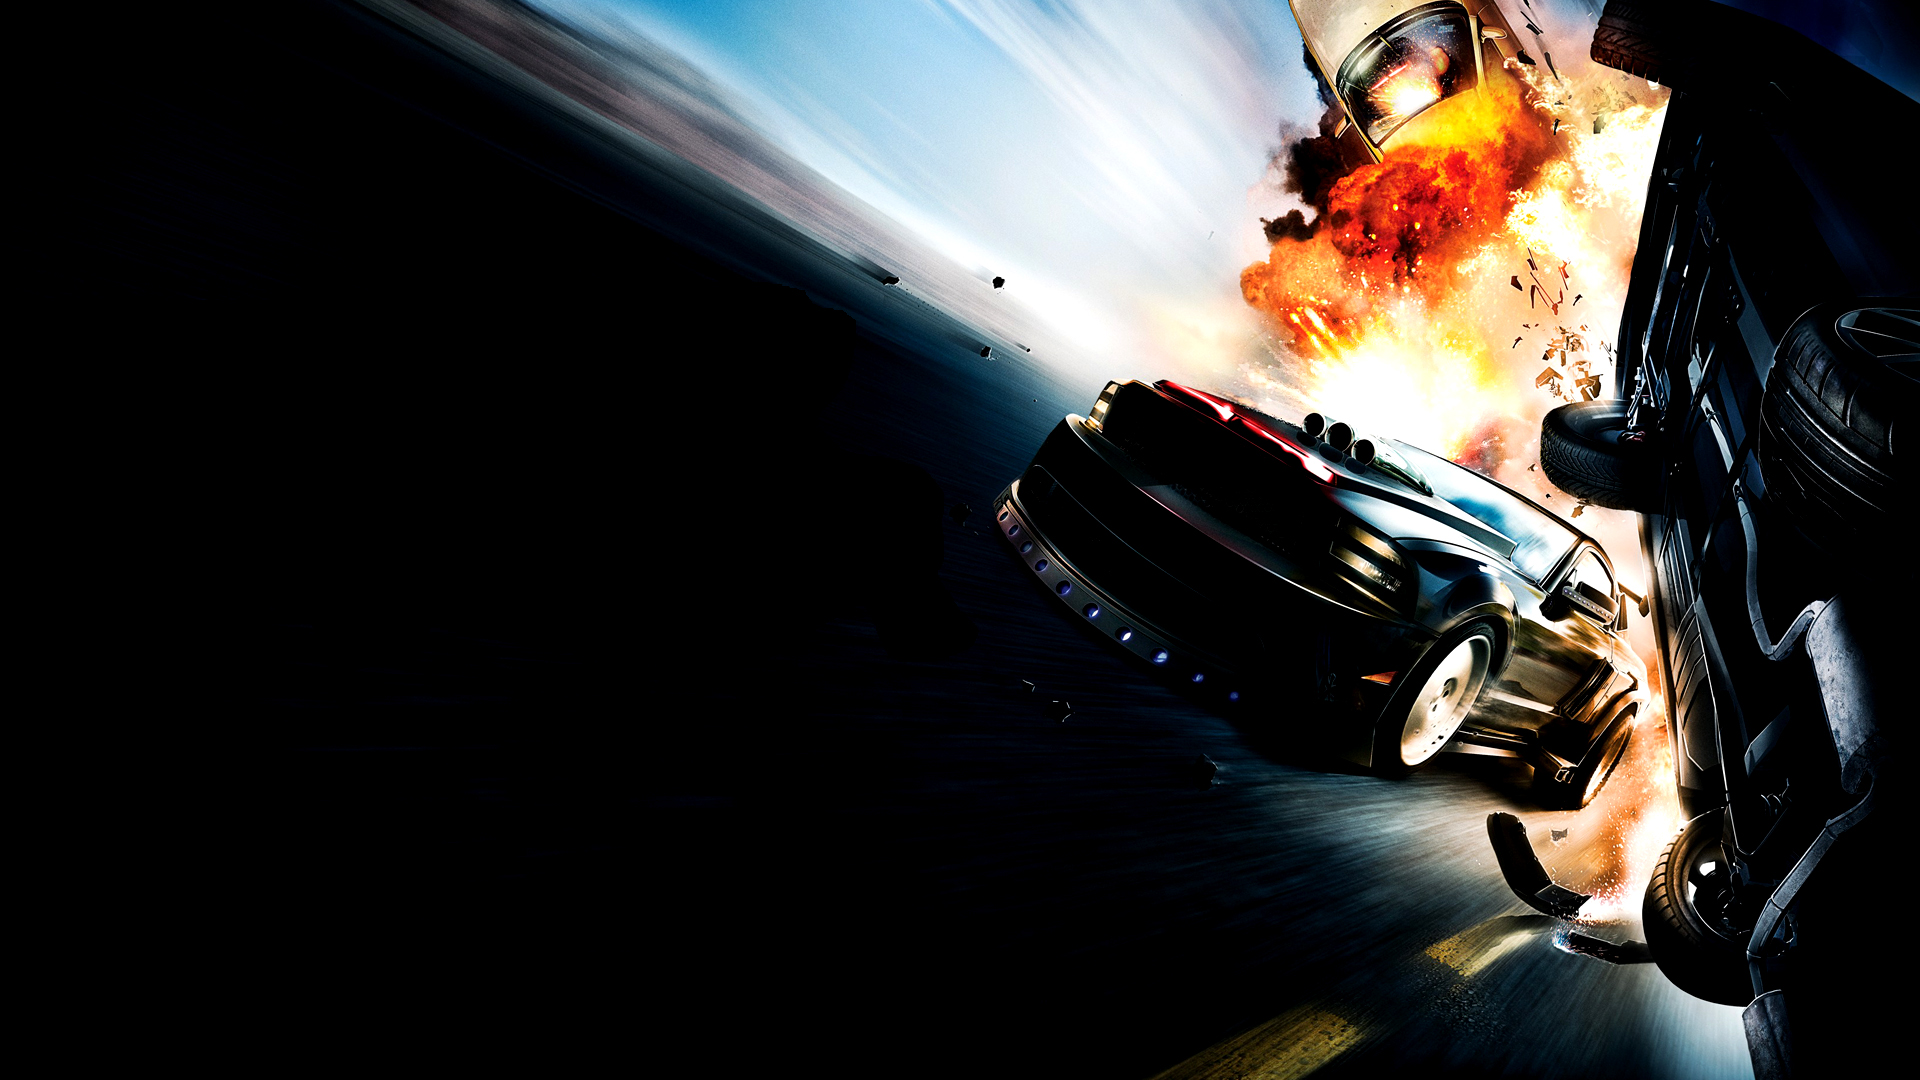 Knight Rider wallpaper 1920x1080 1   hebusorg   High Definition 1920x1080